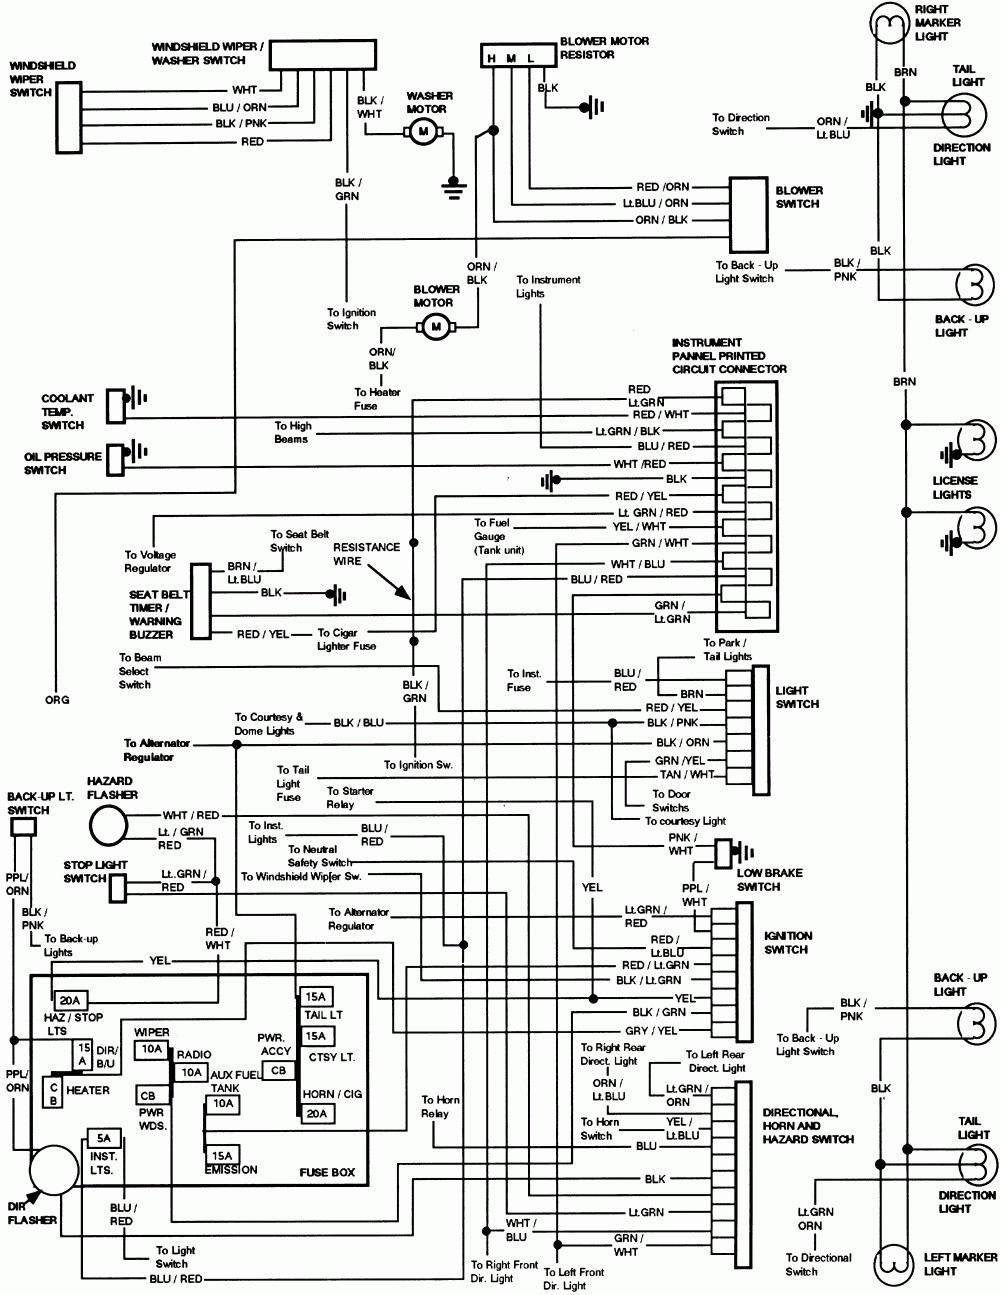 hight resolution of 87 ford wiring diagram wiring diagrams ford power window wiring diagram 1987 ford f150 wiring diagram